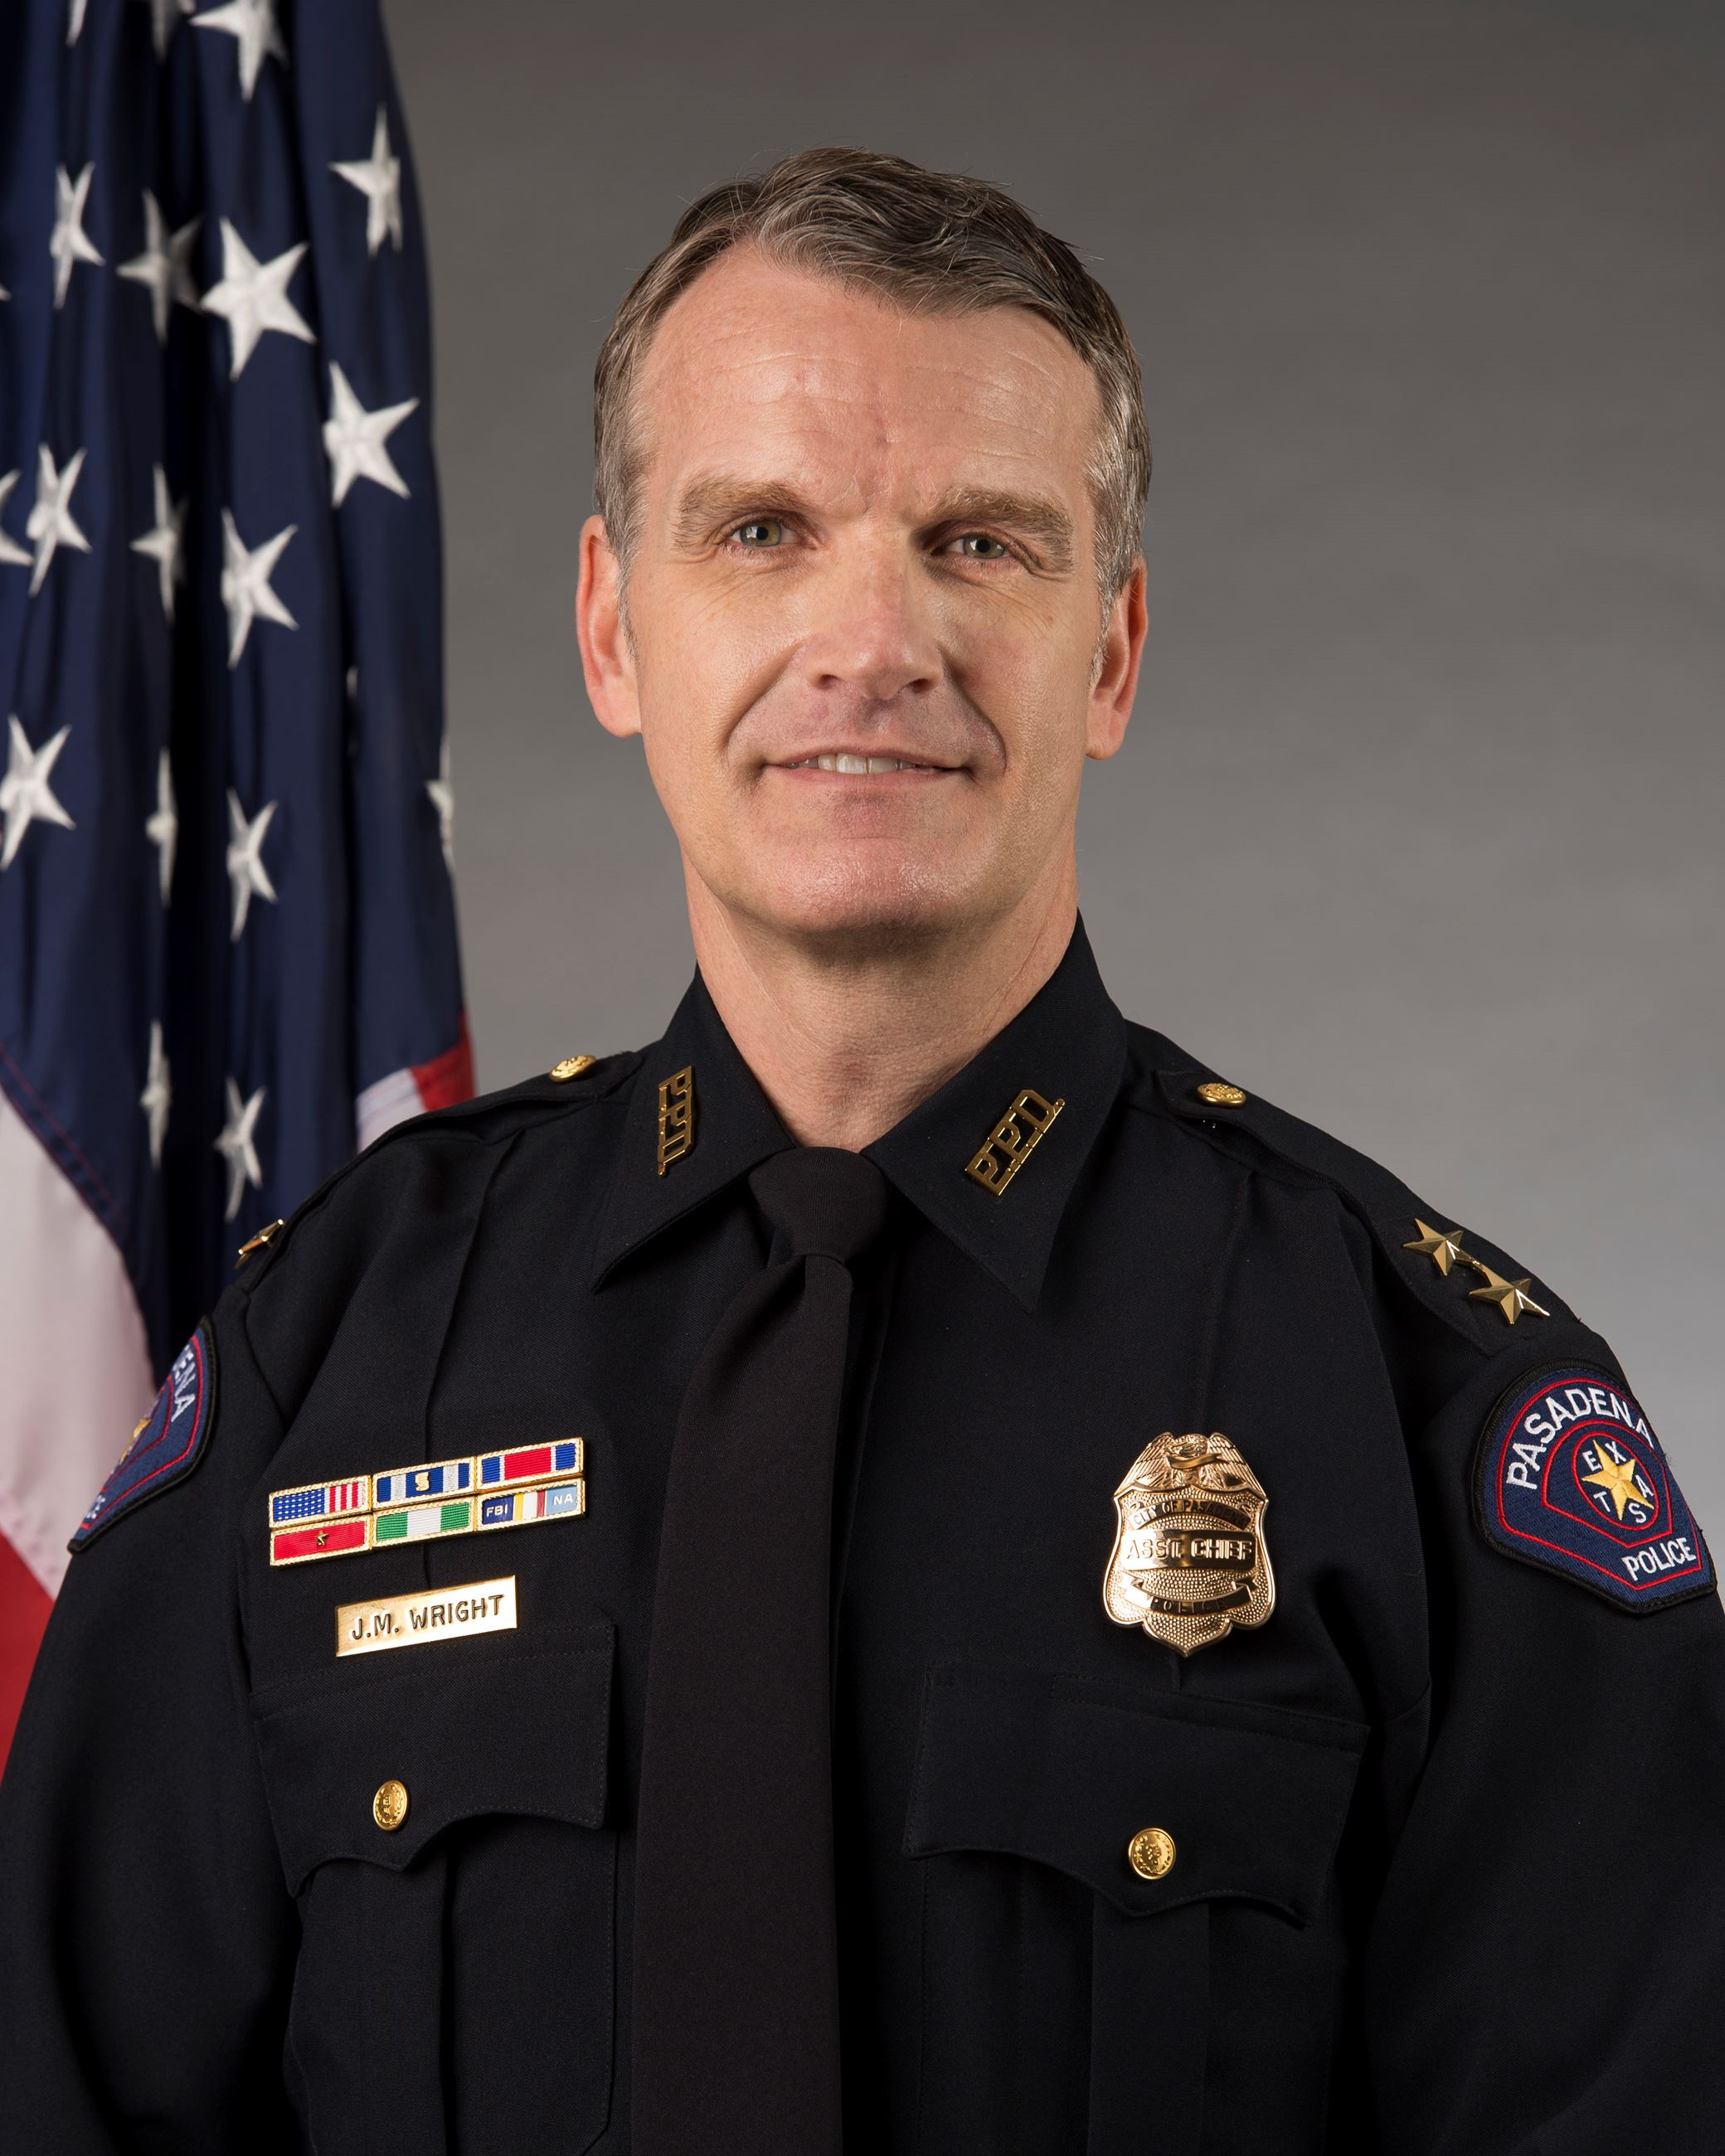 Jerry Wright, Assistant Chief